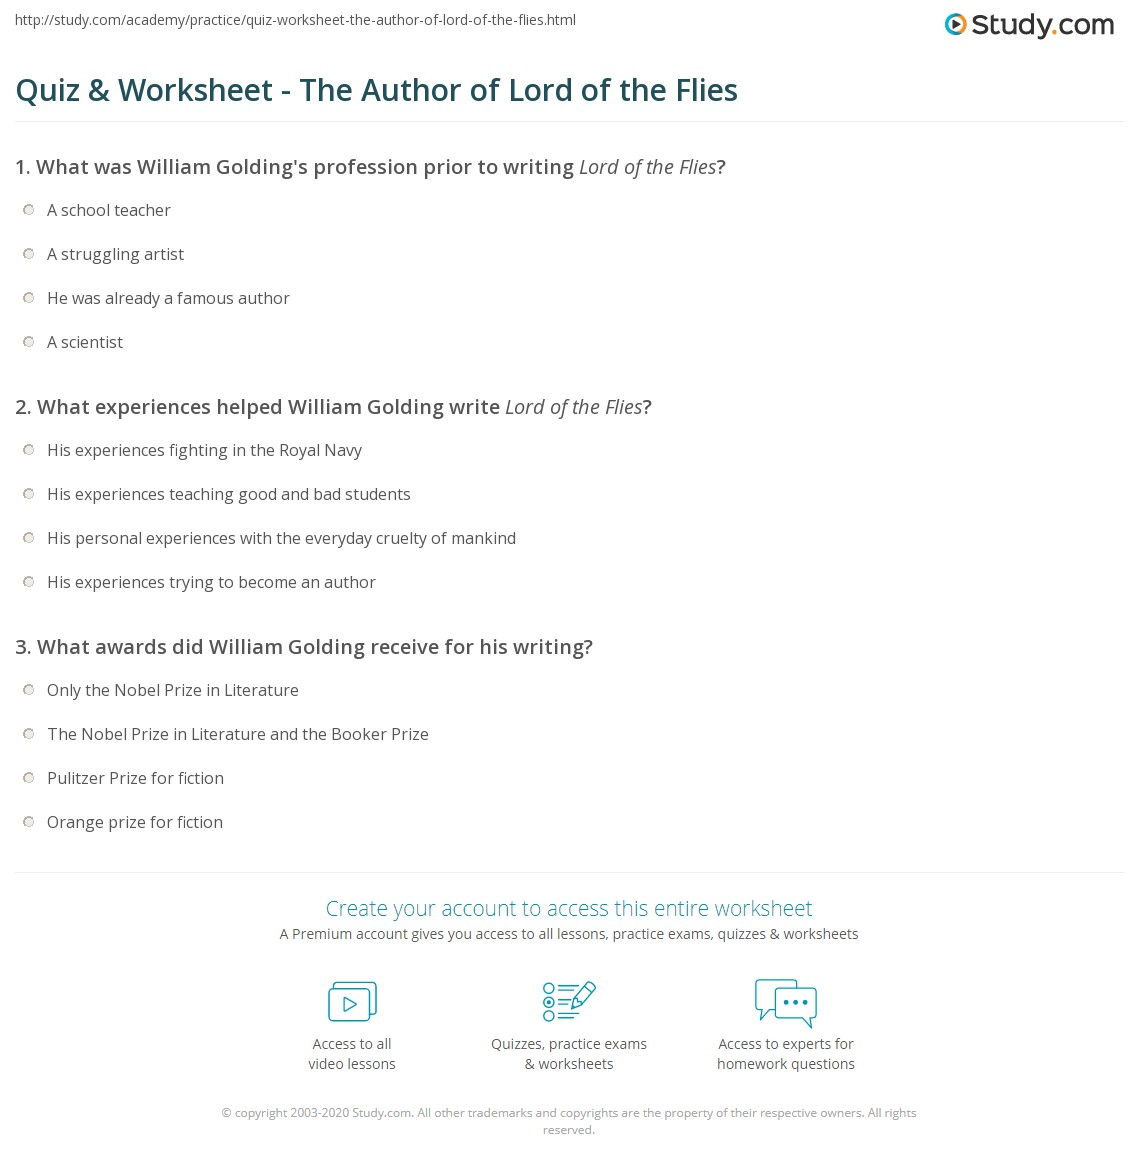 quiz worksheet the author of lord of the flies com print who wrote lord of the flies william golding biography works worksheet